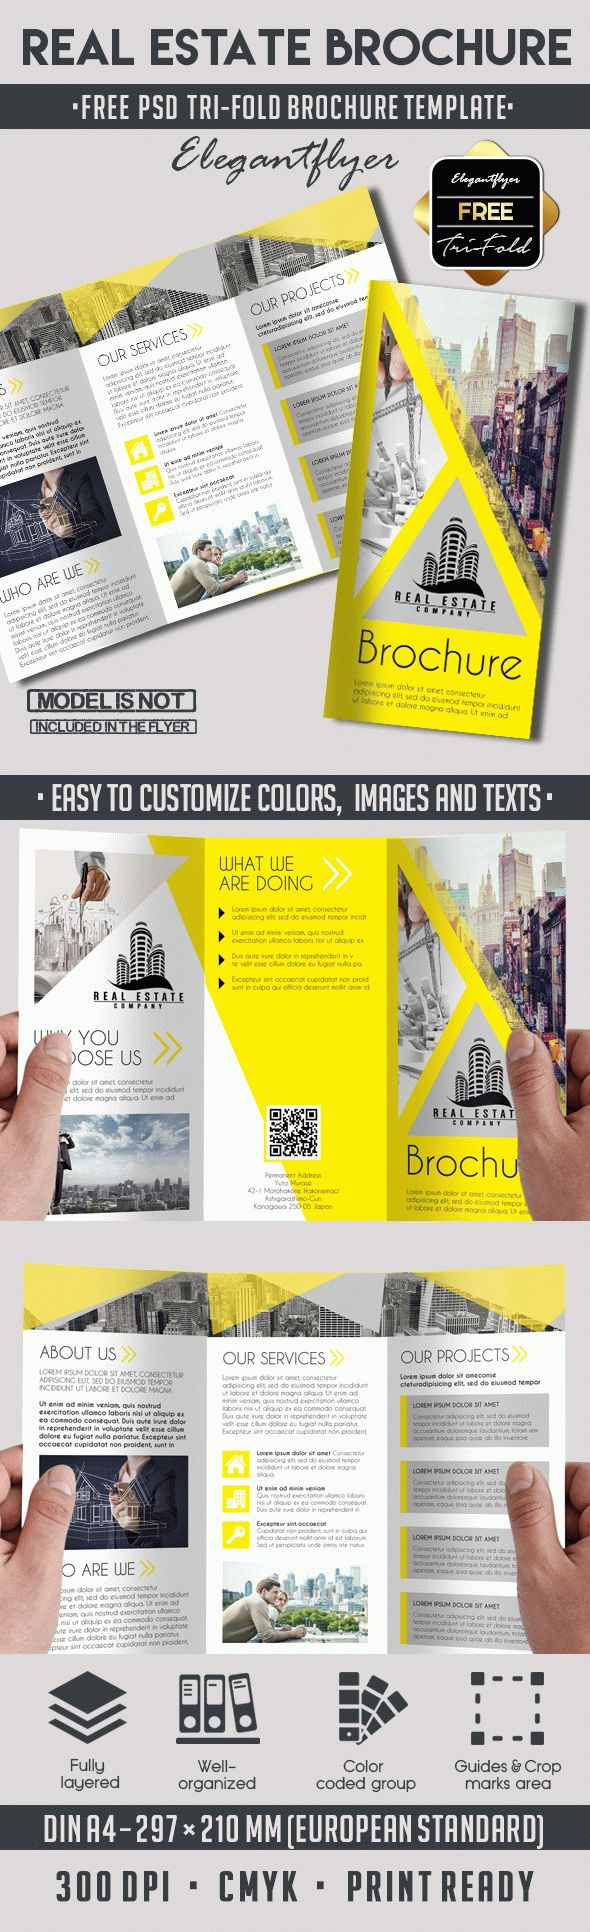 Real Estate Free TriFold PSD Brochure Template by ElegantFlyer – Advertising Brochure Template